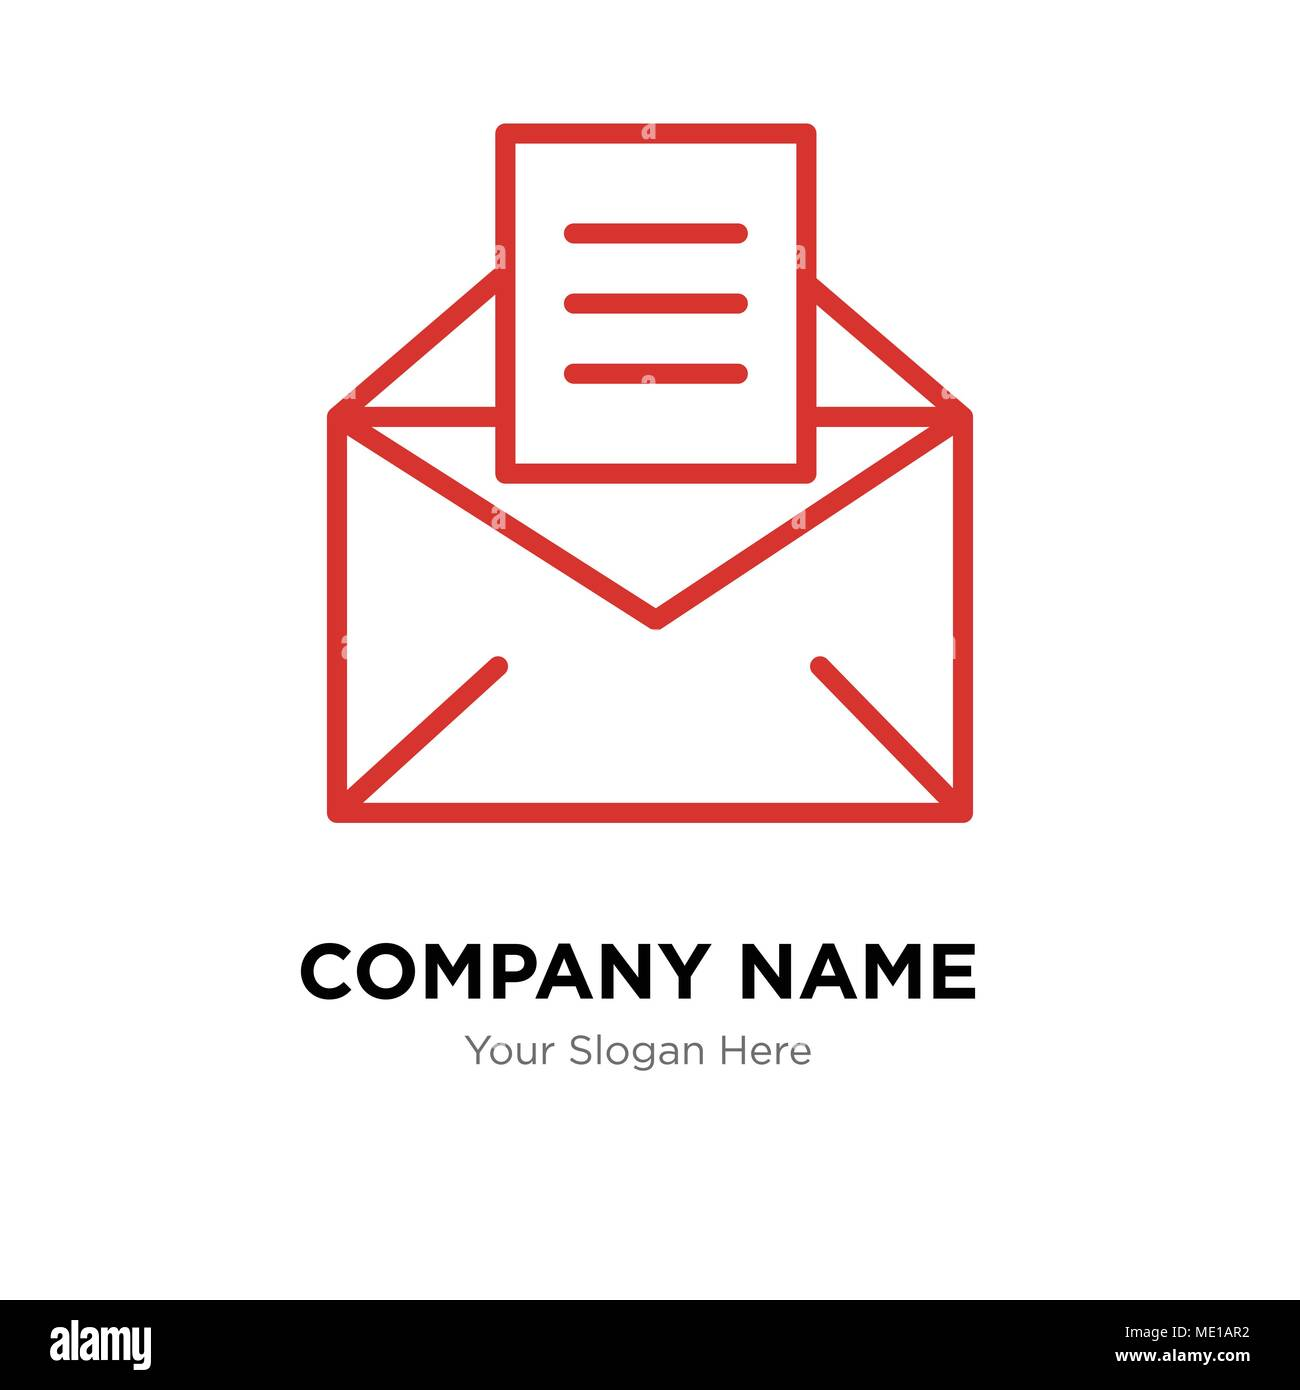 email company logo design template, business corporate vector icon